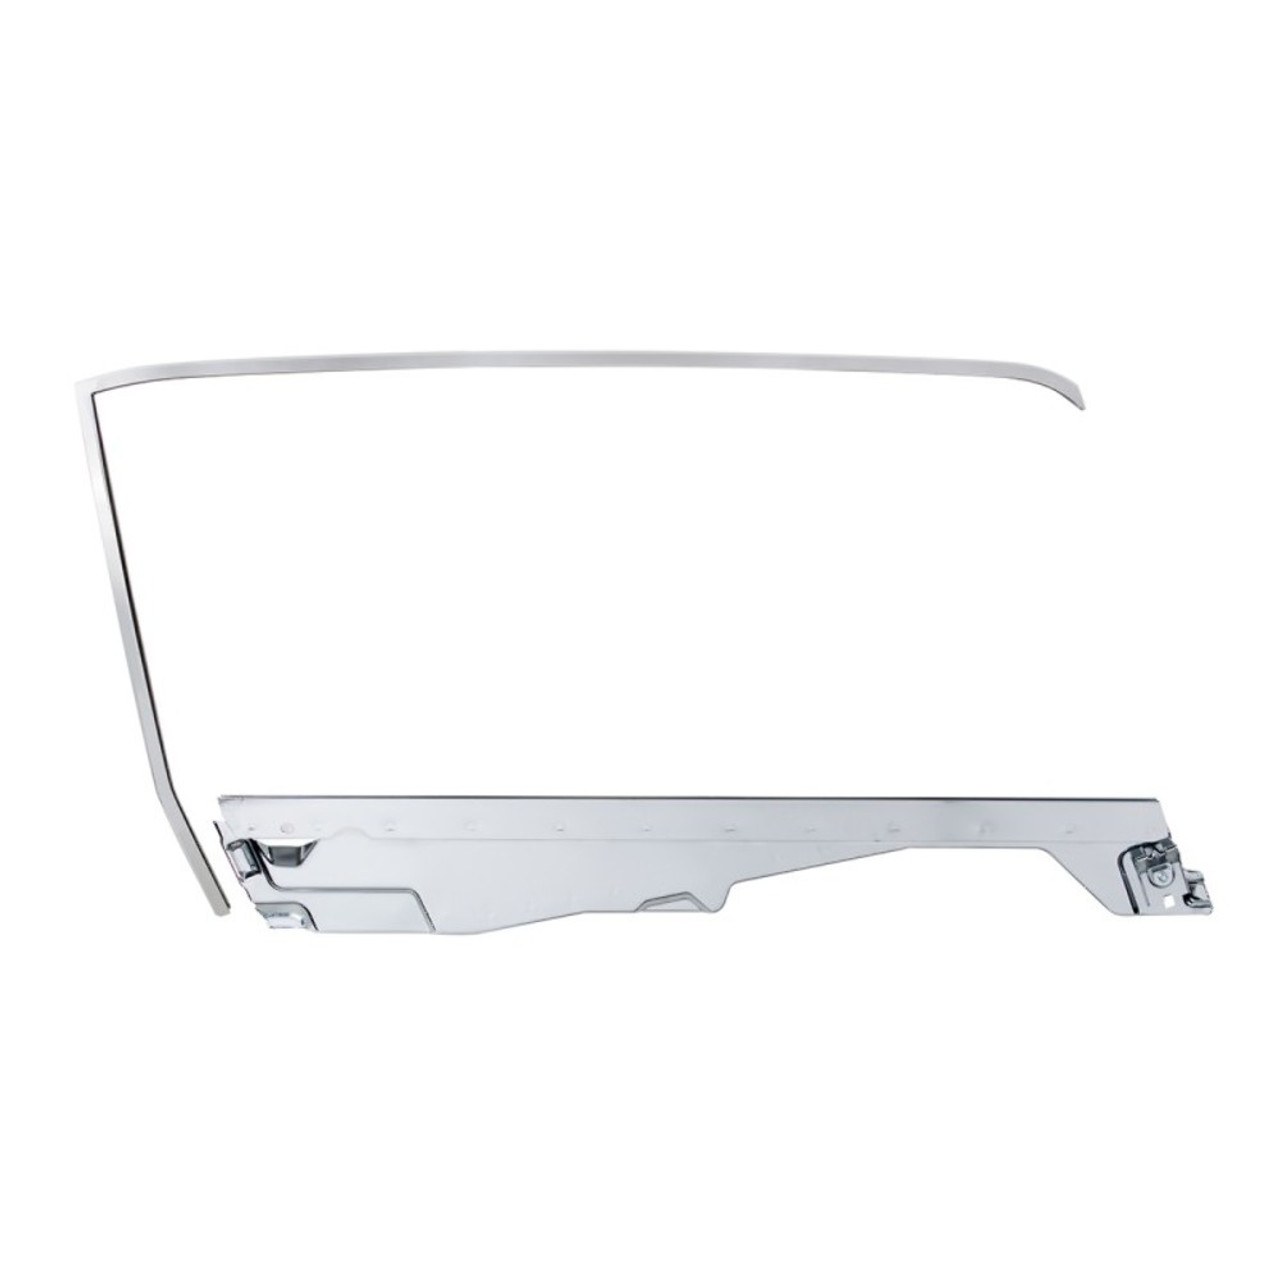 Door Glass Frame Kit For 1965-66 Ford Mustang Convertible -  R/H